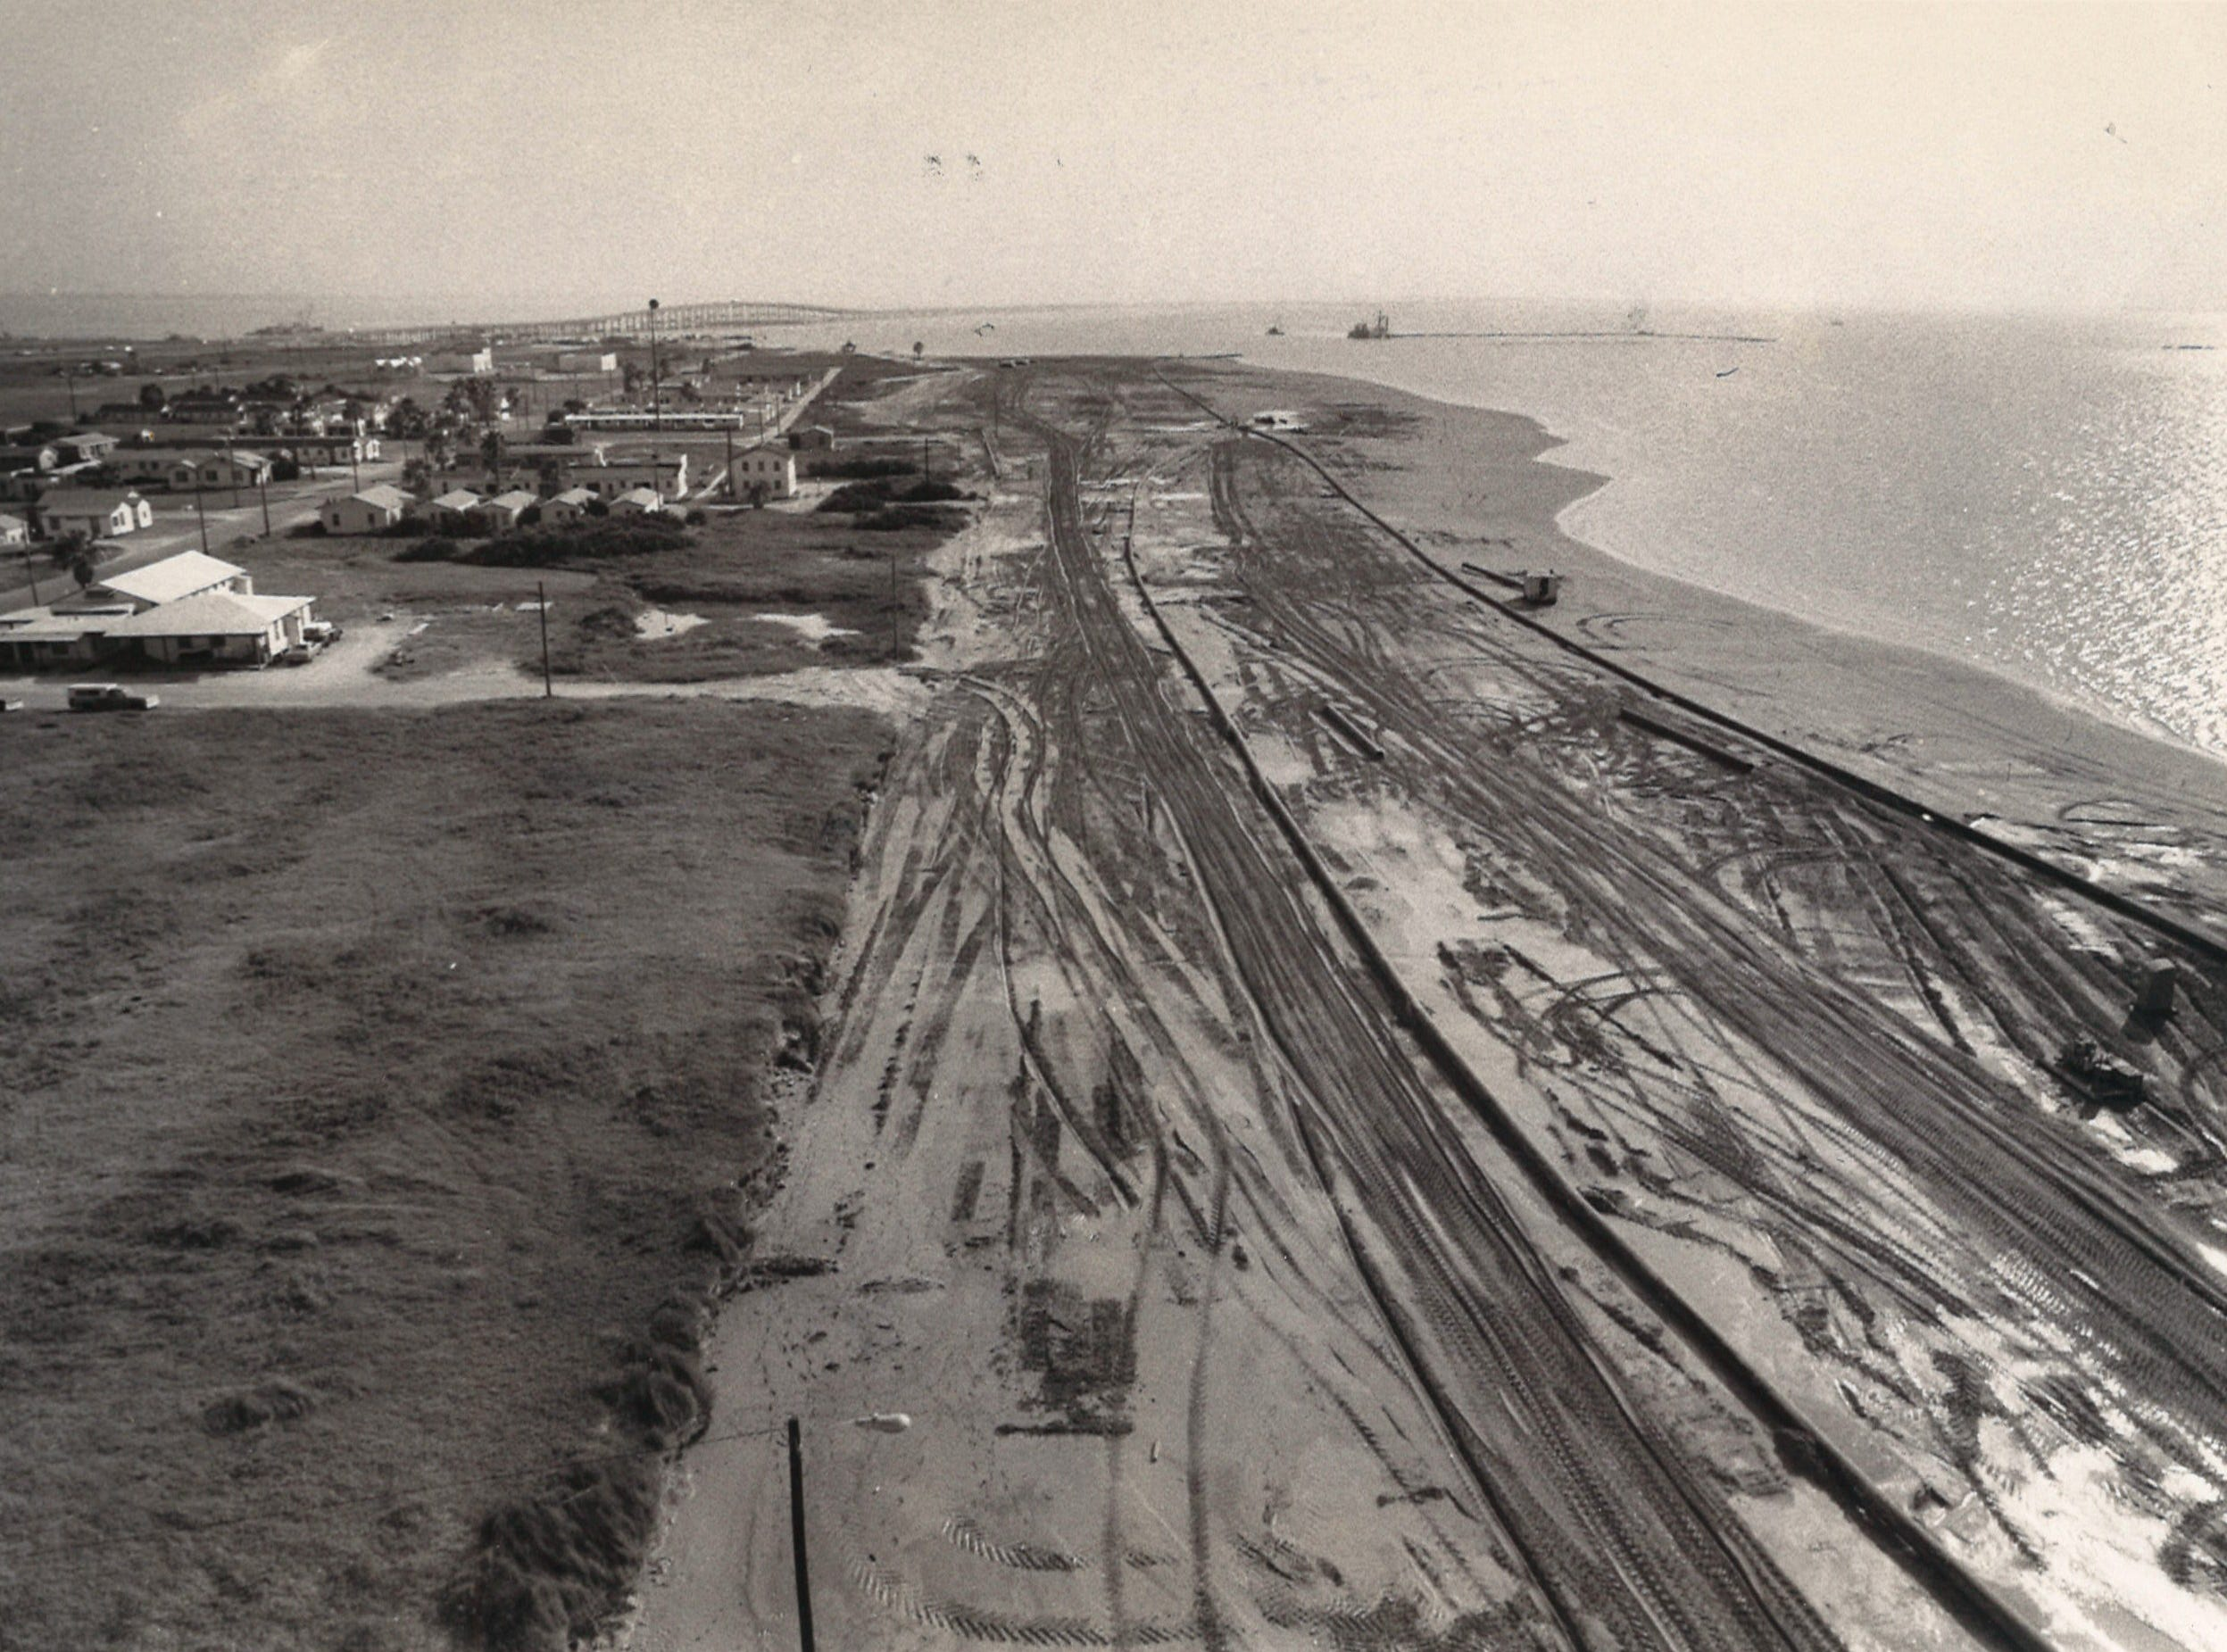 Redevelopment work begins on Corpus Christi's North Beach in June 1977.